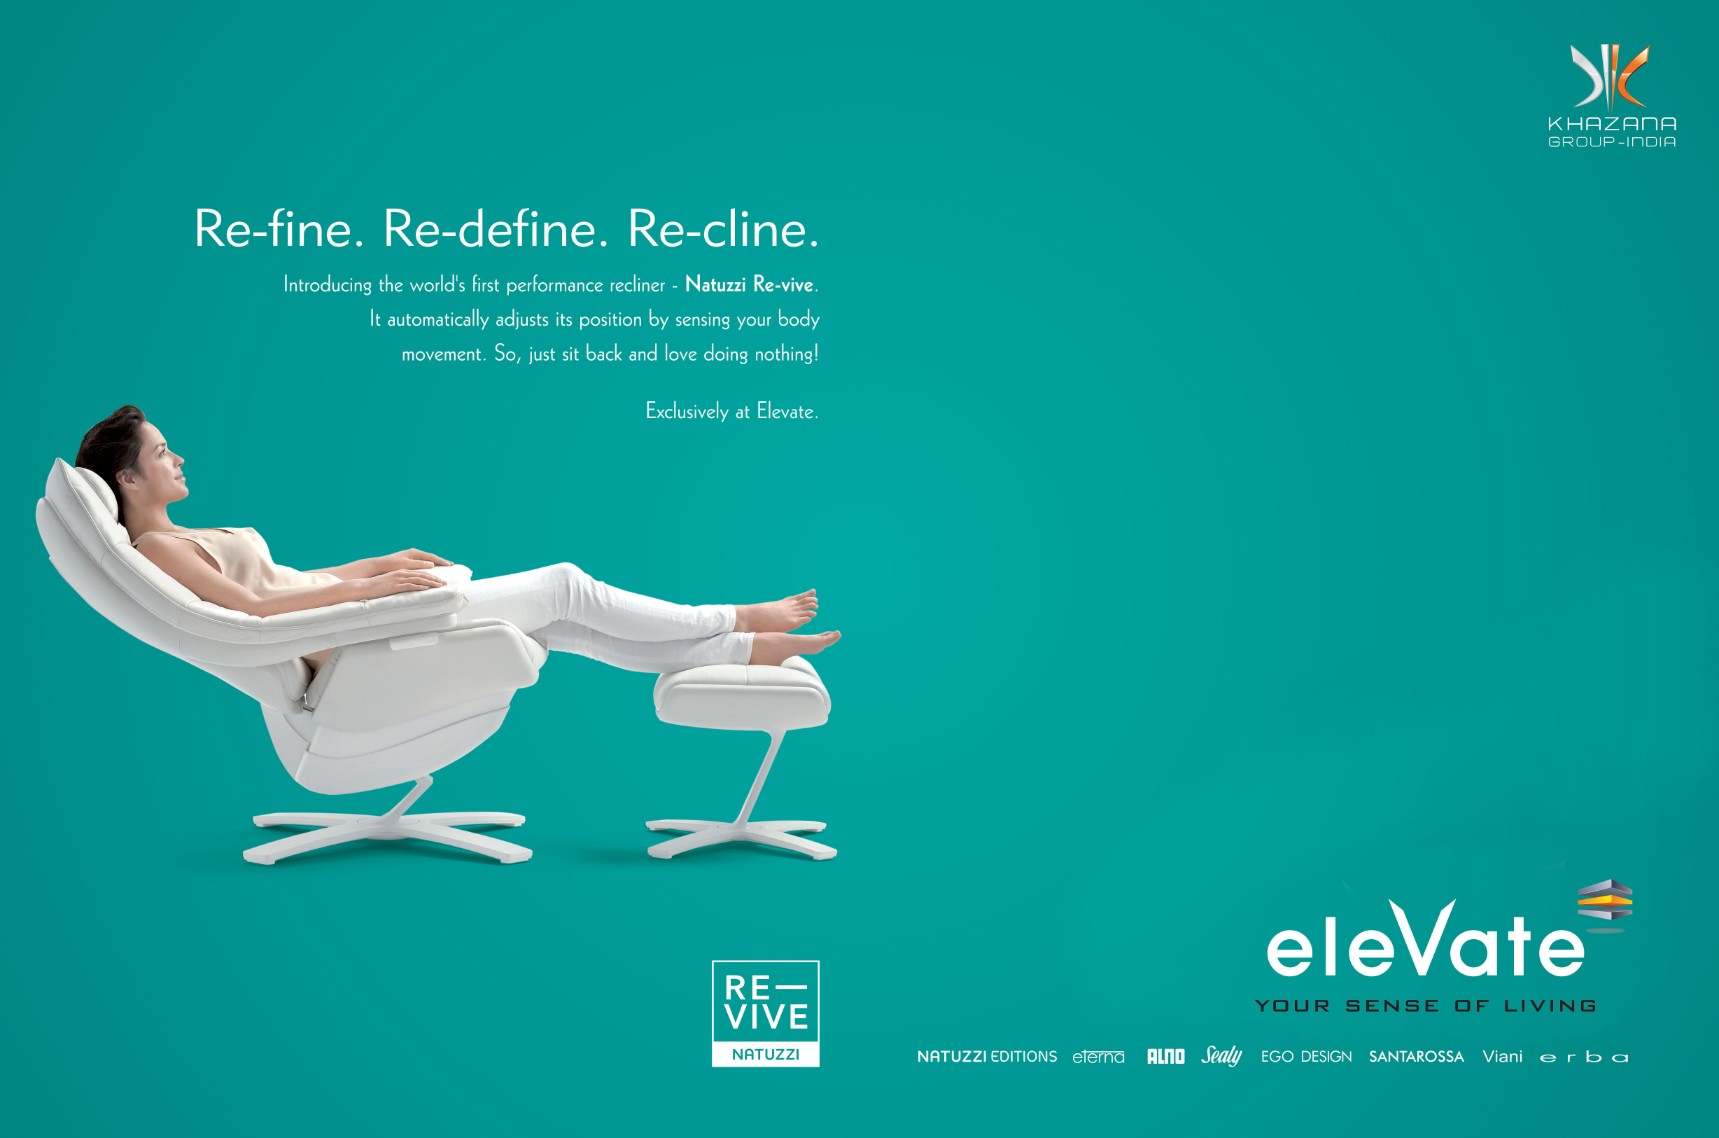 lmlm19uim4z-recliner,-revive,-natuzzi,-elevate,-furniture-ad,-what's-in-a-name,-best-ad